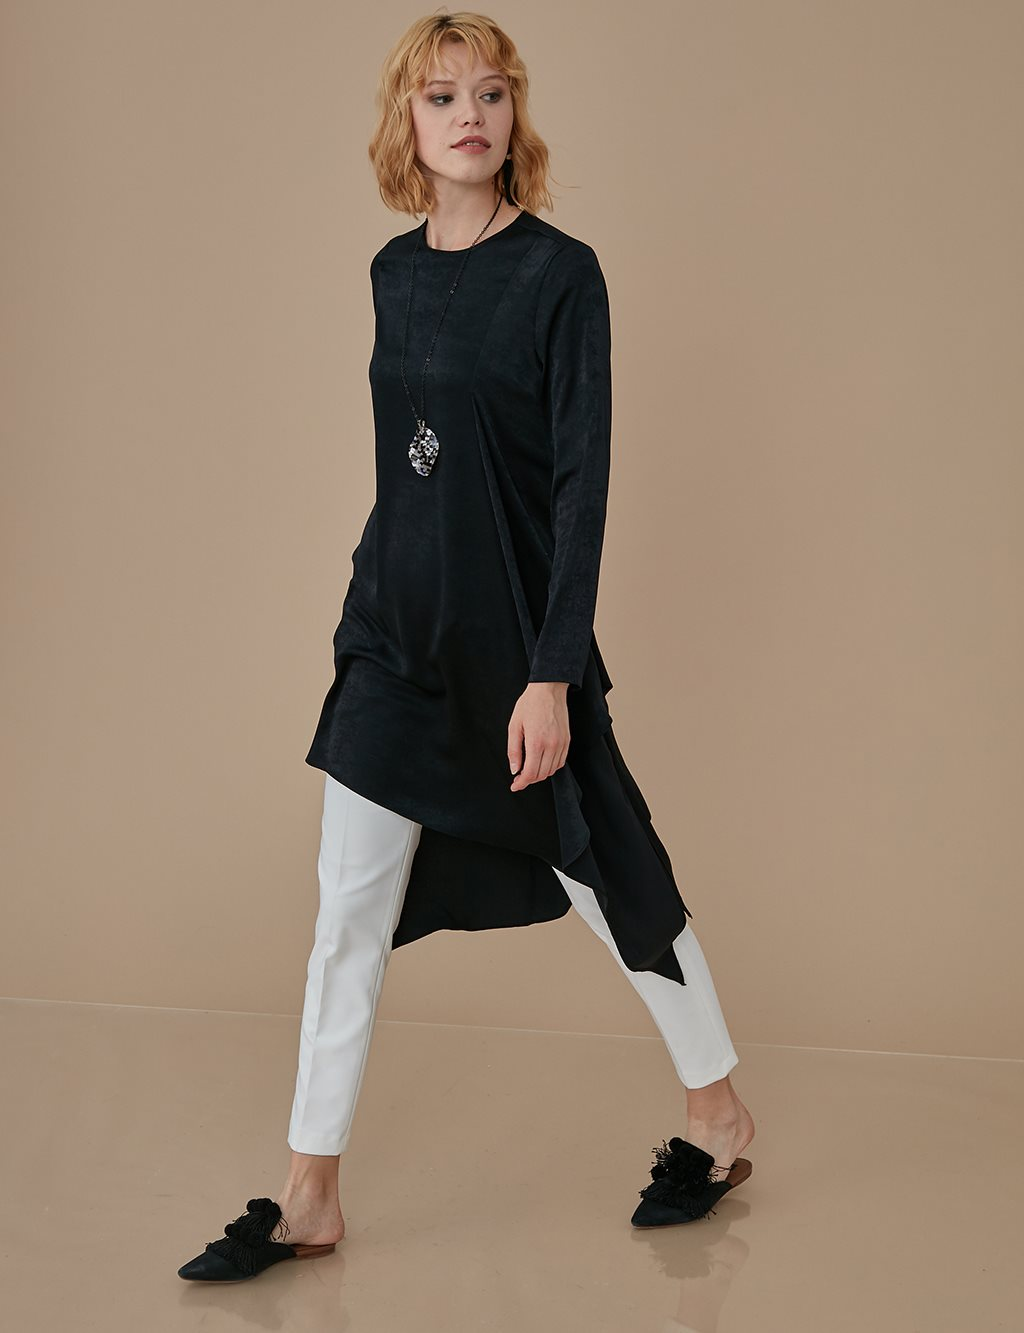 Asymmetric Tunic With Necklace A9 21116 Black